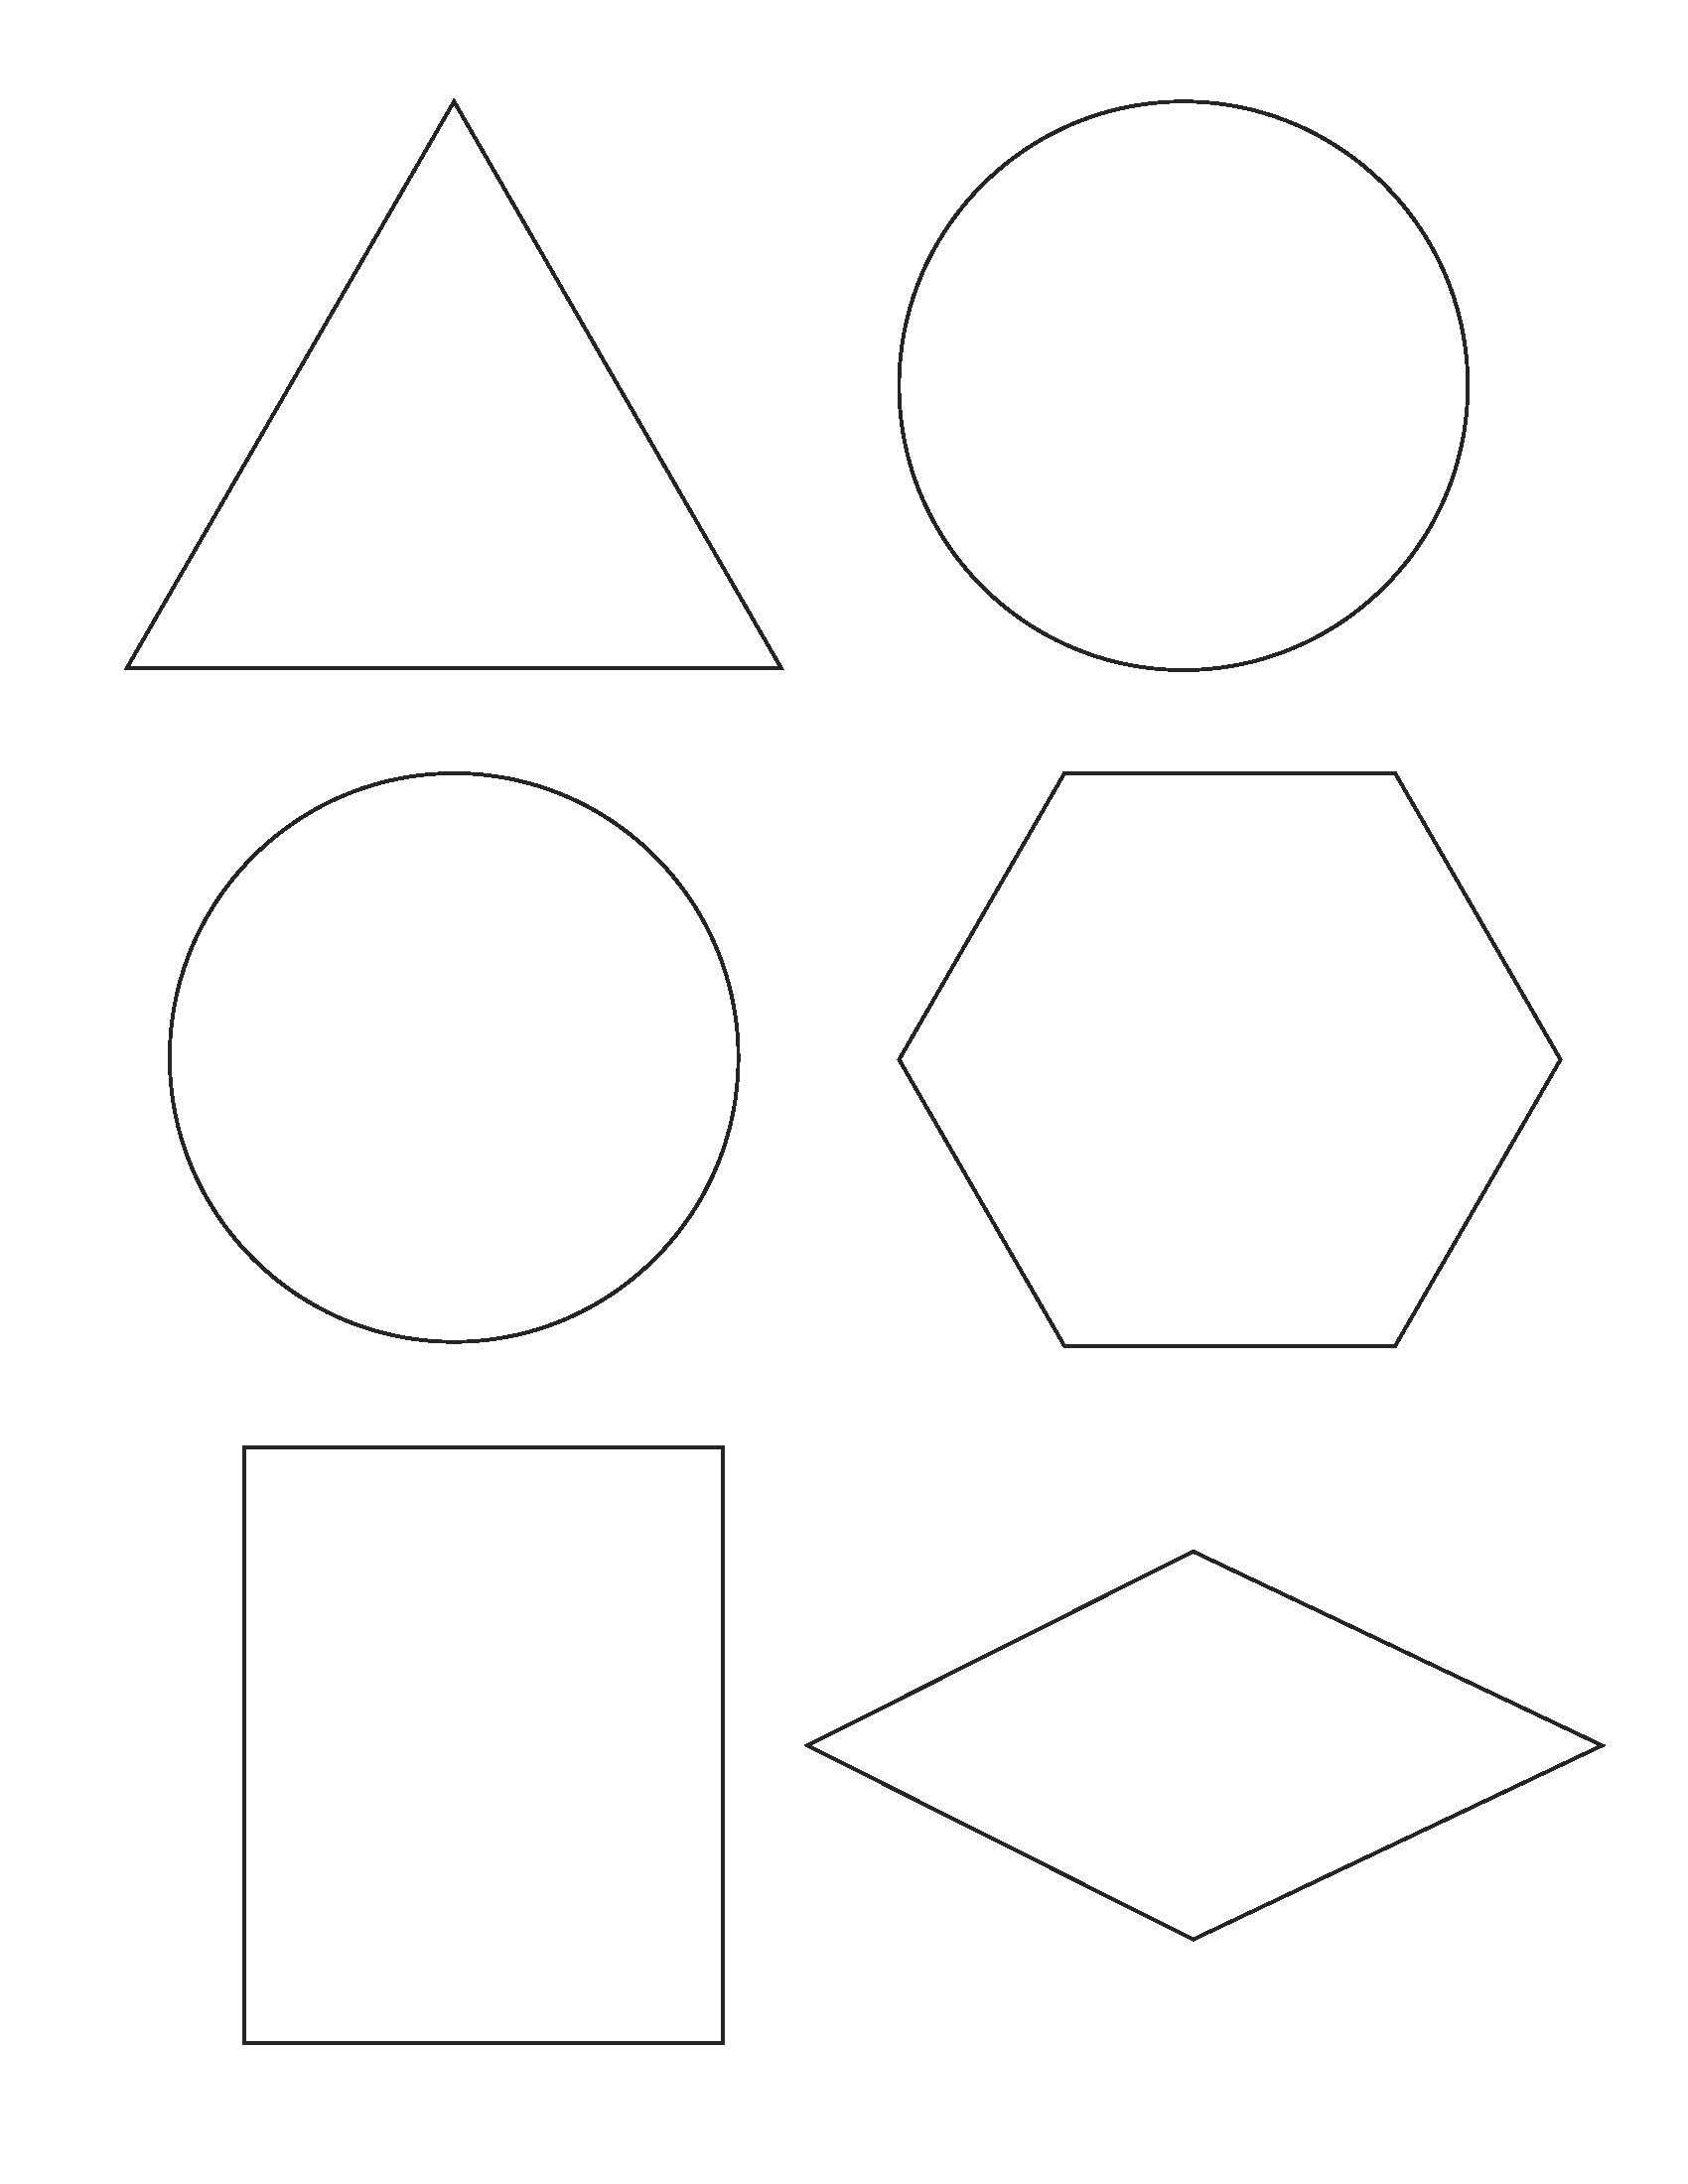 Free Printable Shapes Templates – Pazzo - Free Printable Shapes Templates